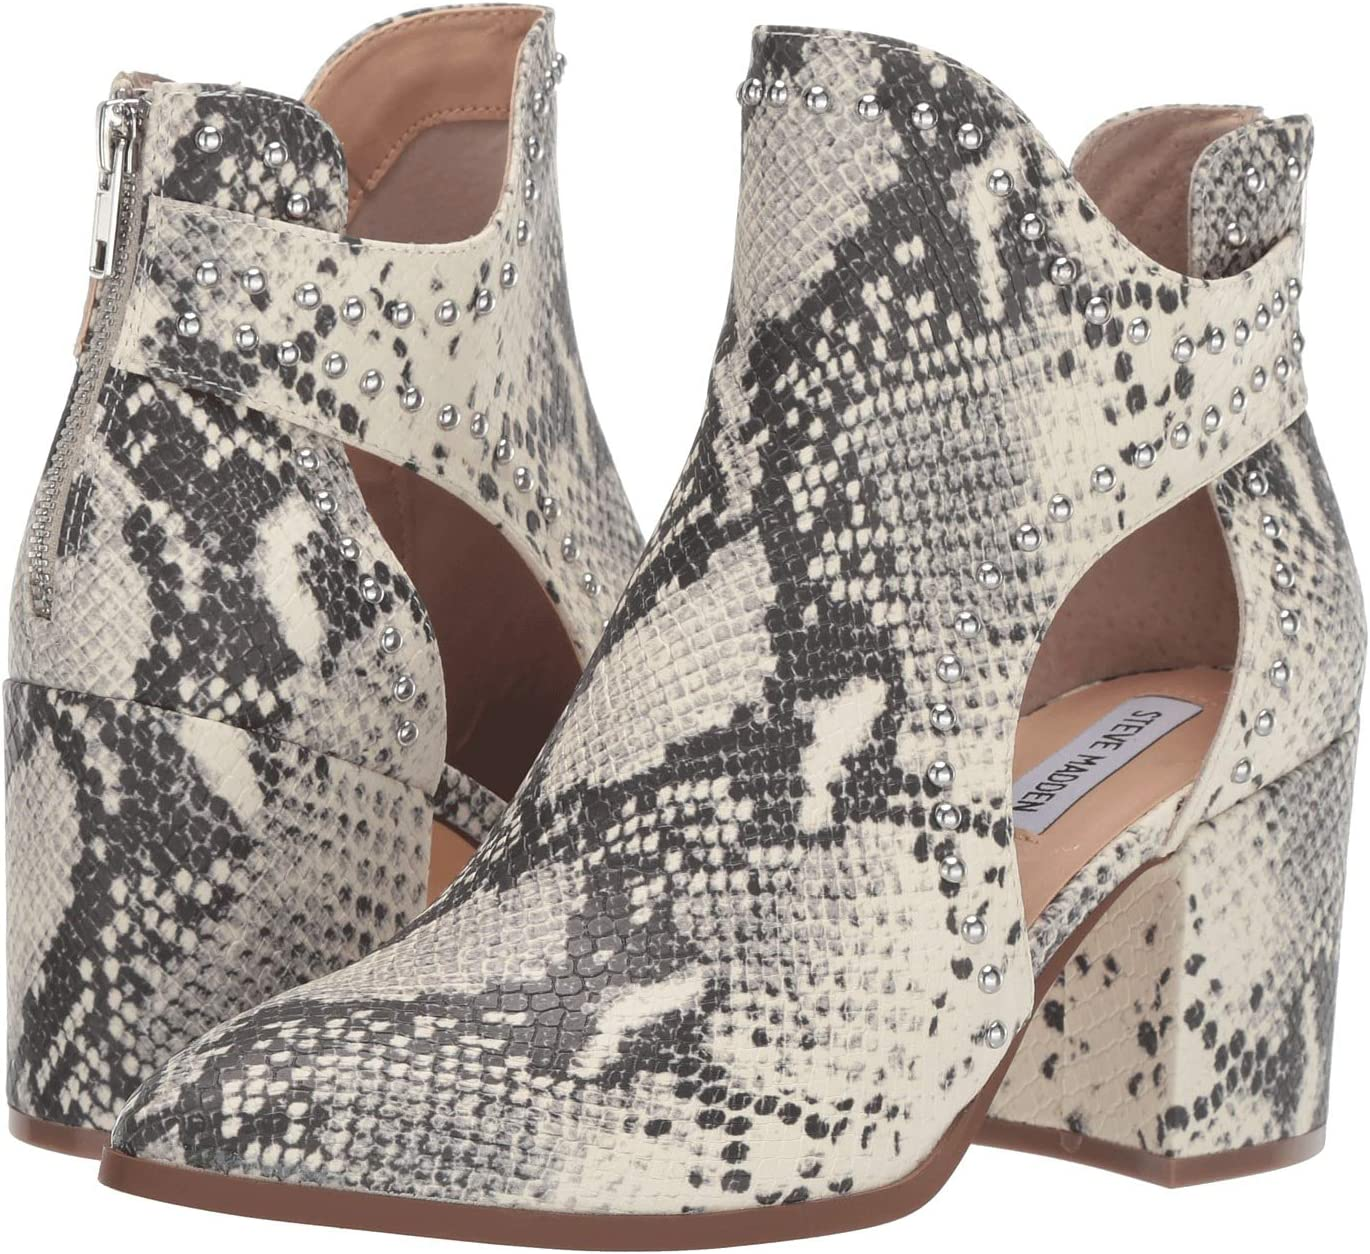 28bb45c5214 Steve Madden Shoes, Boots, Sandals | Zappos.com